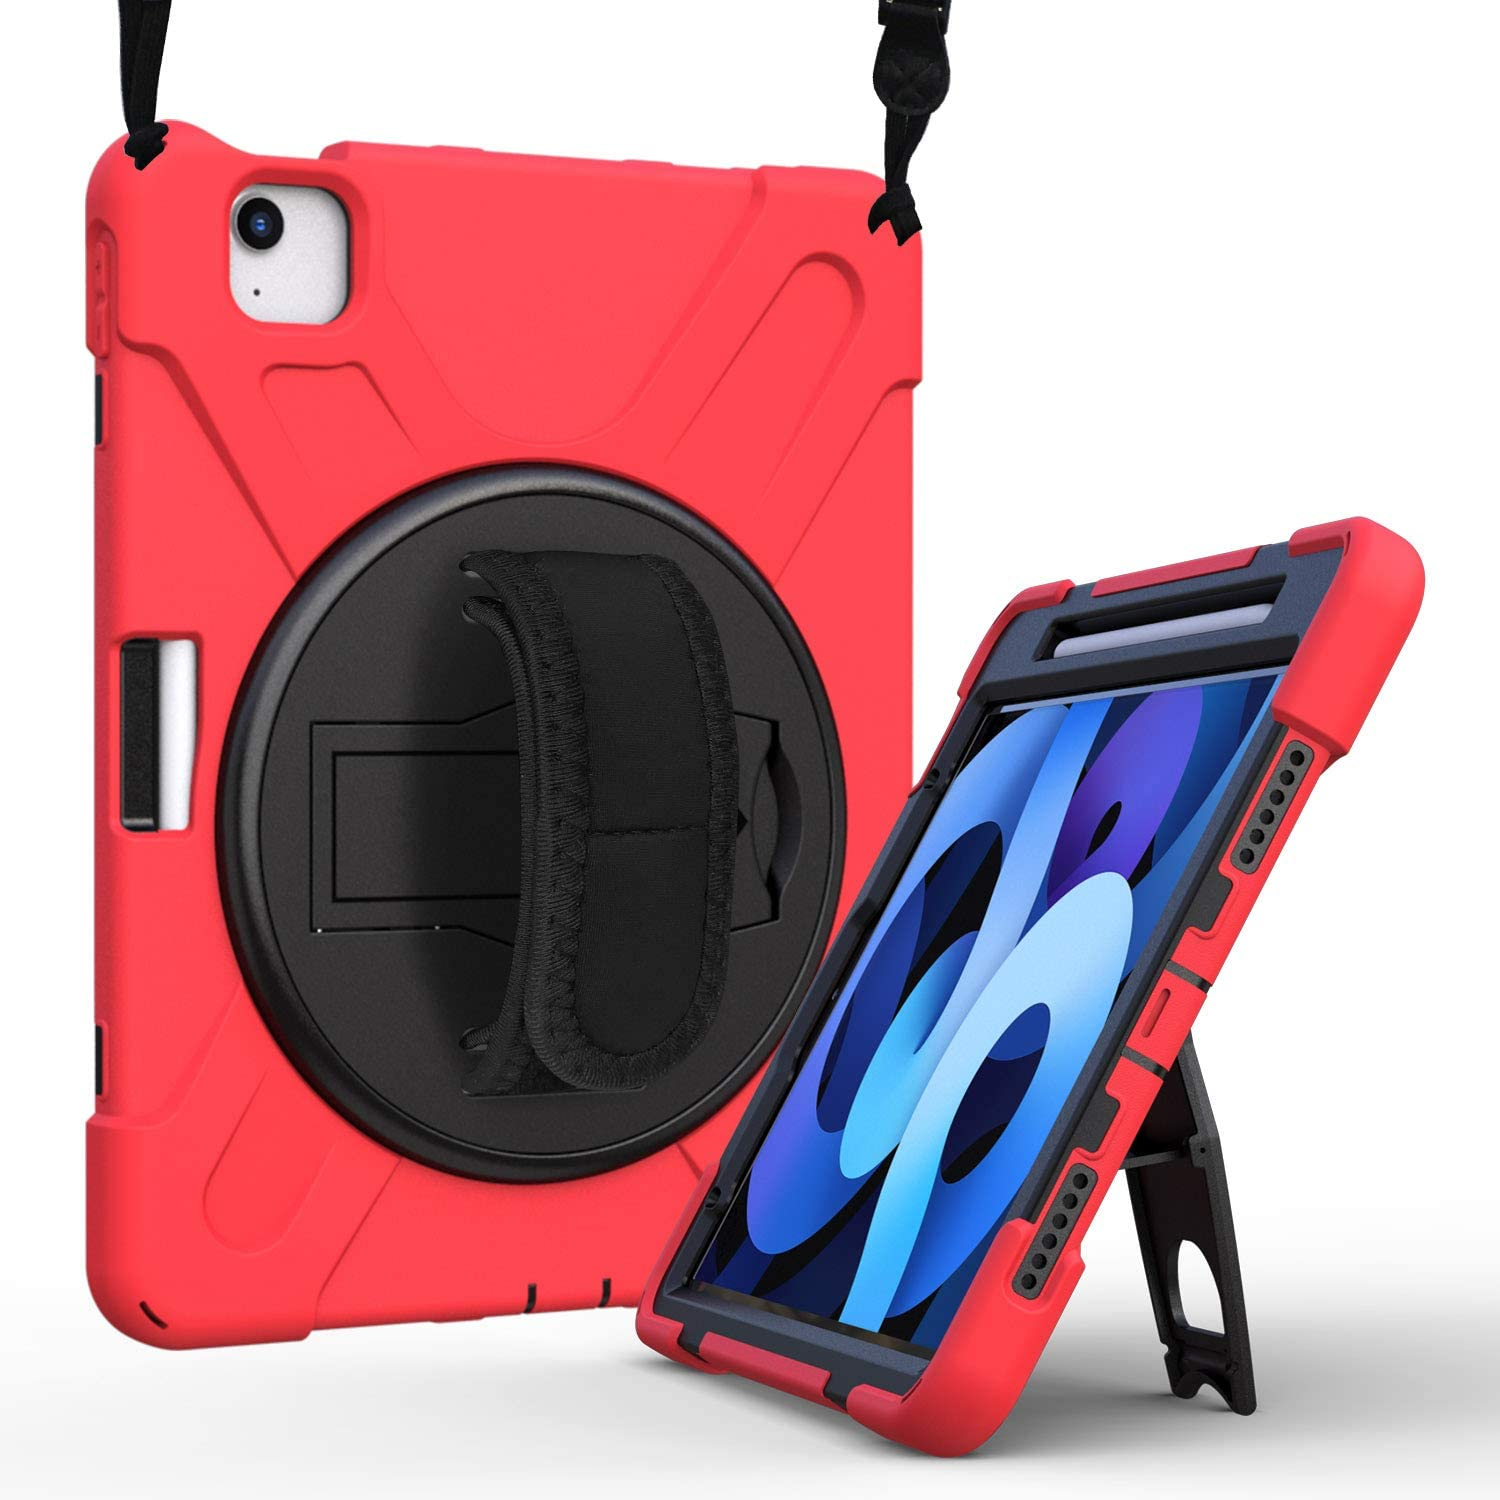 Case for iPad Air 4 10.9 Inch 2020 | Herize iPad Air 4th Generation Case | Three Layer Heavy Duty Armor Defender Protective Cover with Rotating Strap Stand for Pro 11 inch 2020 2nd Gen/2018 1st Gen